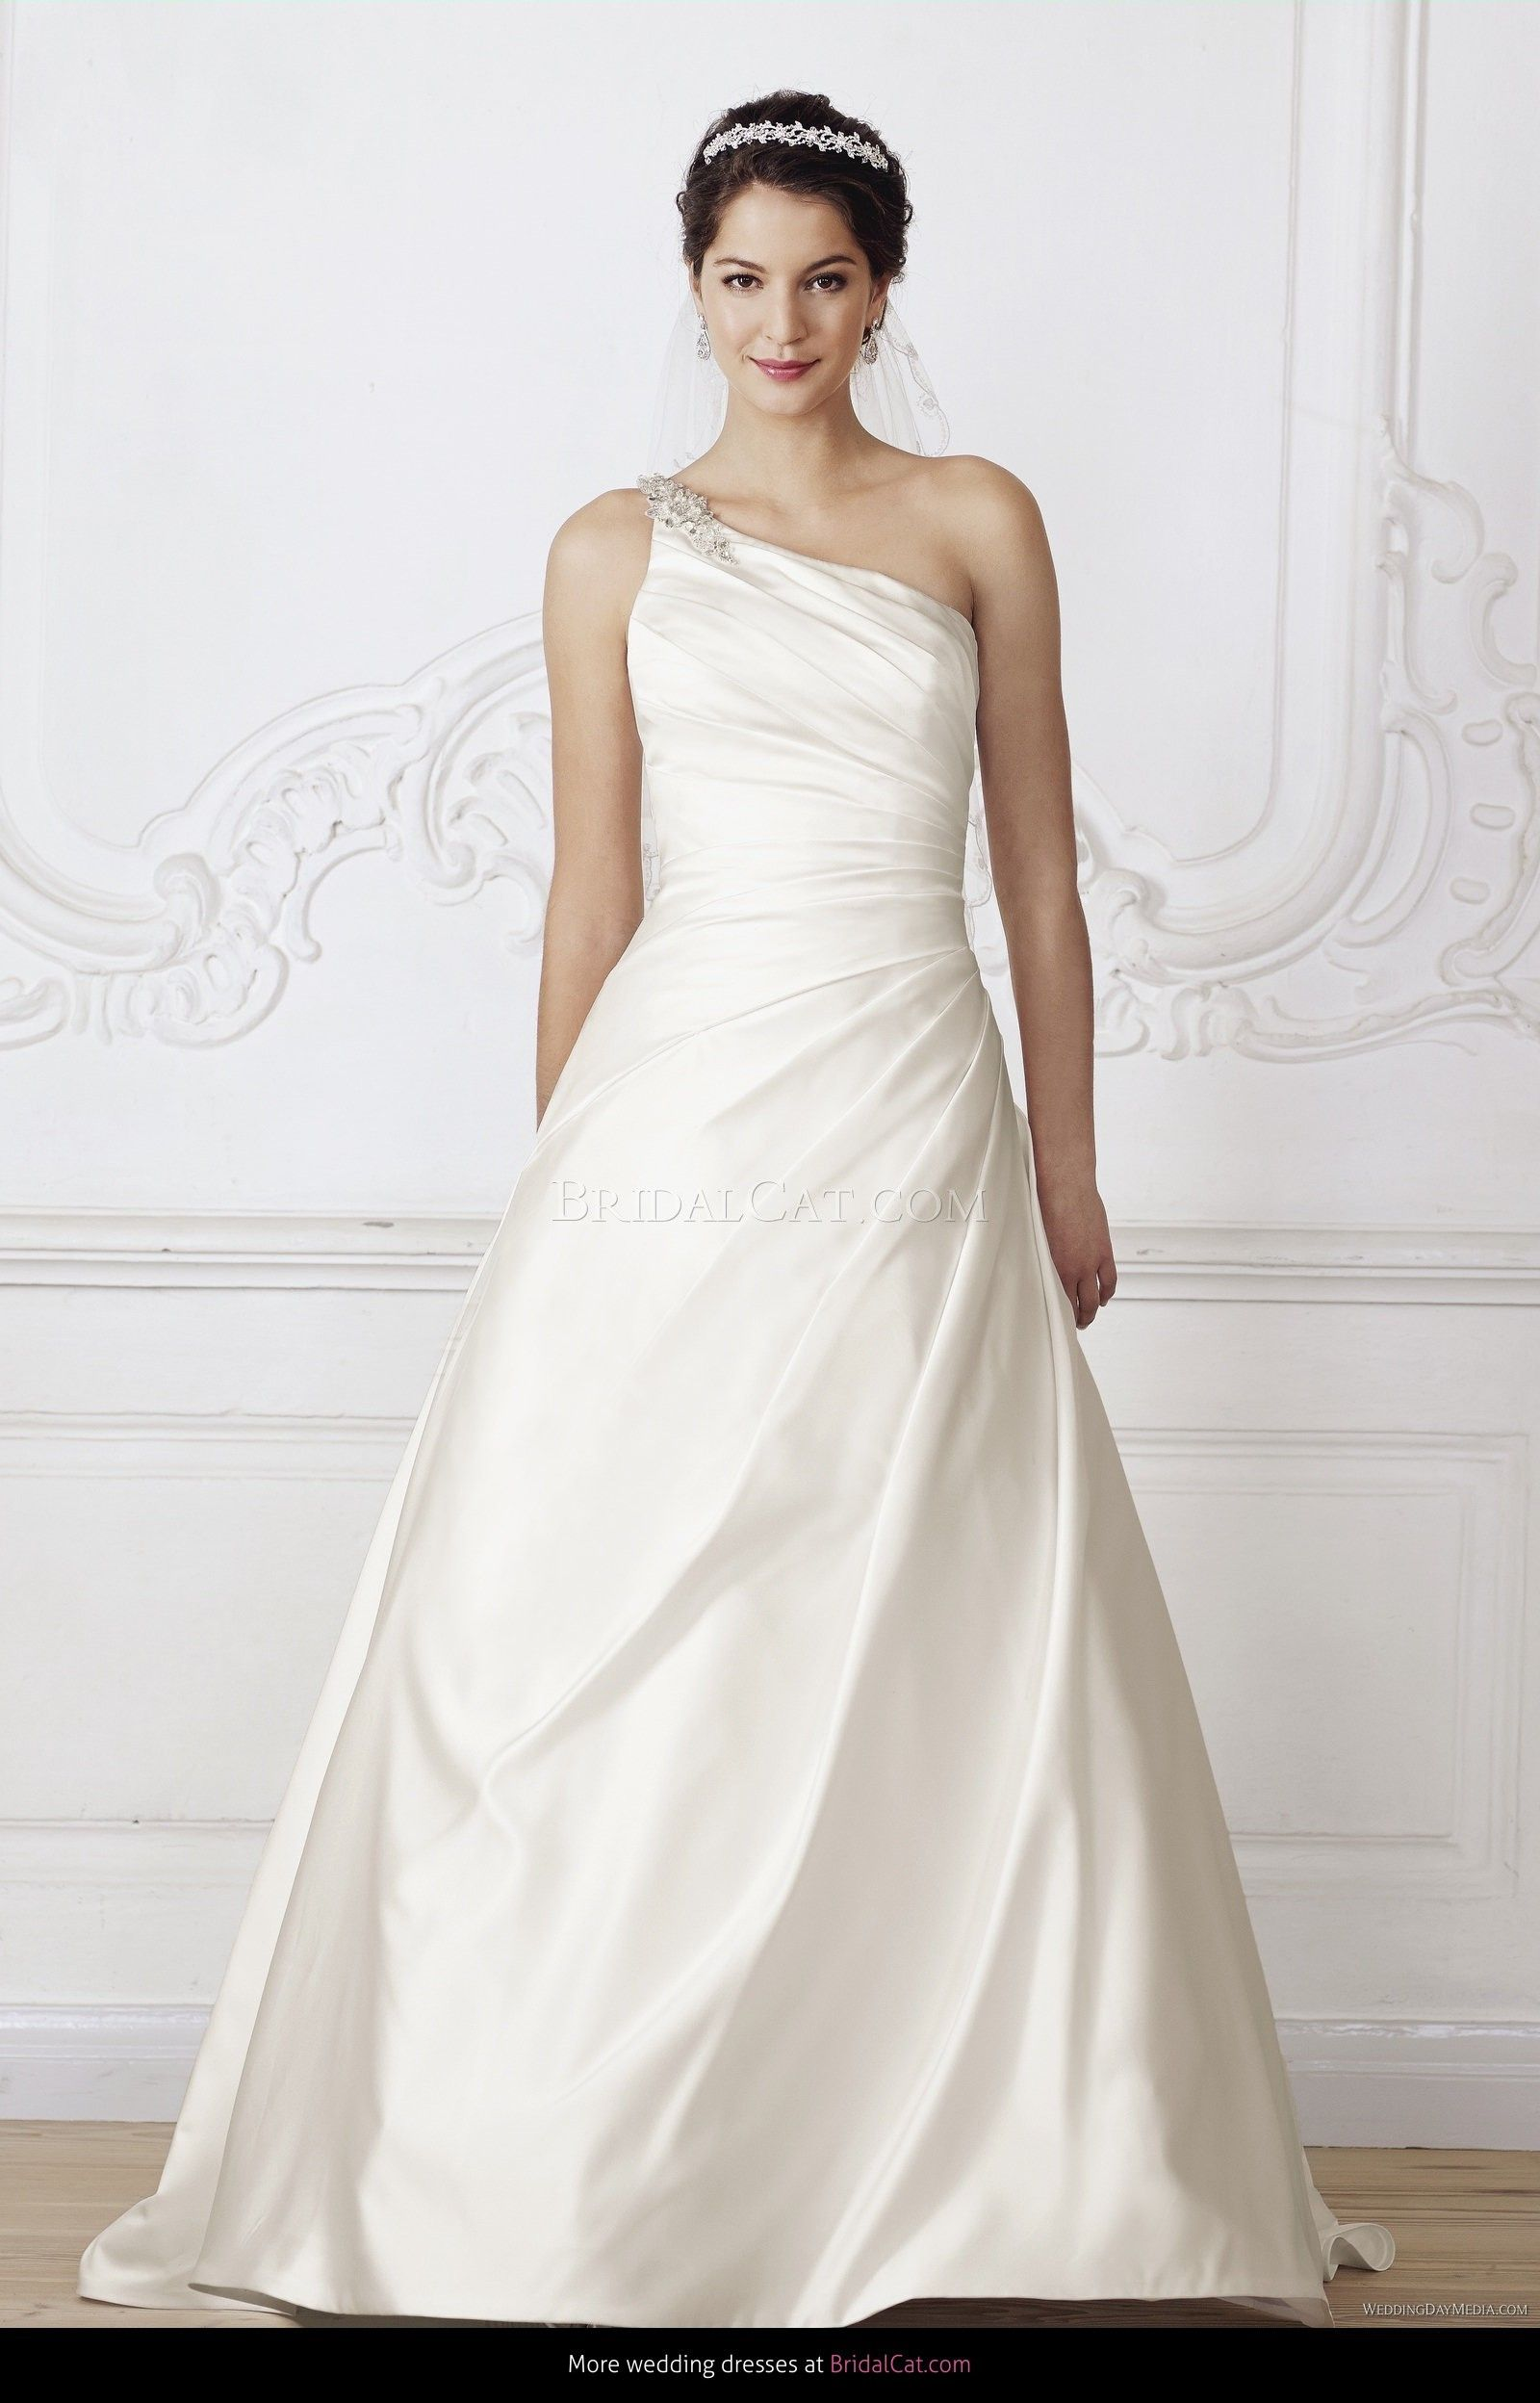 Lilly cr lilly designer wedding dresses